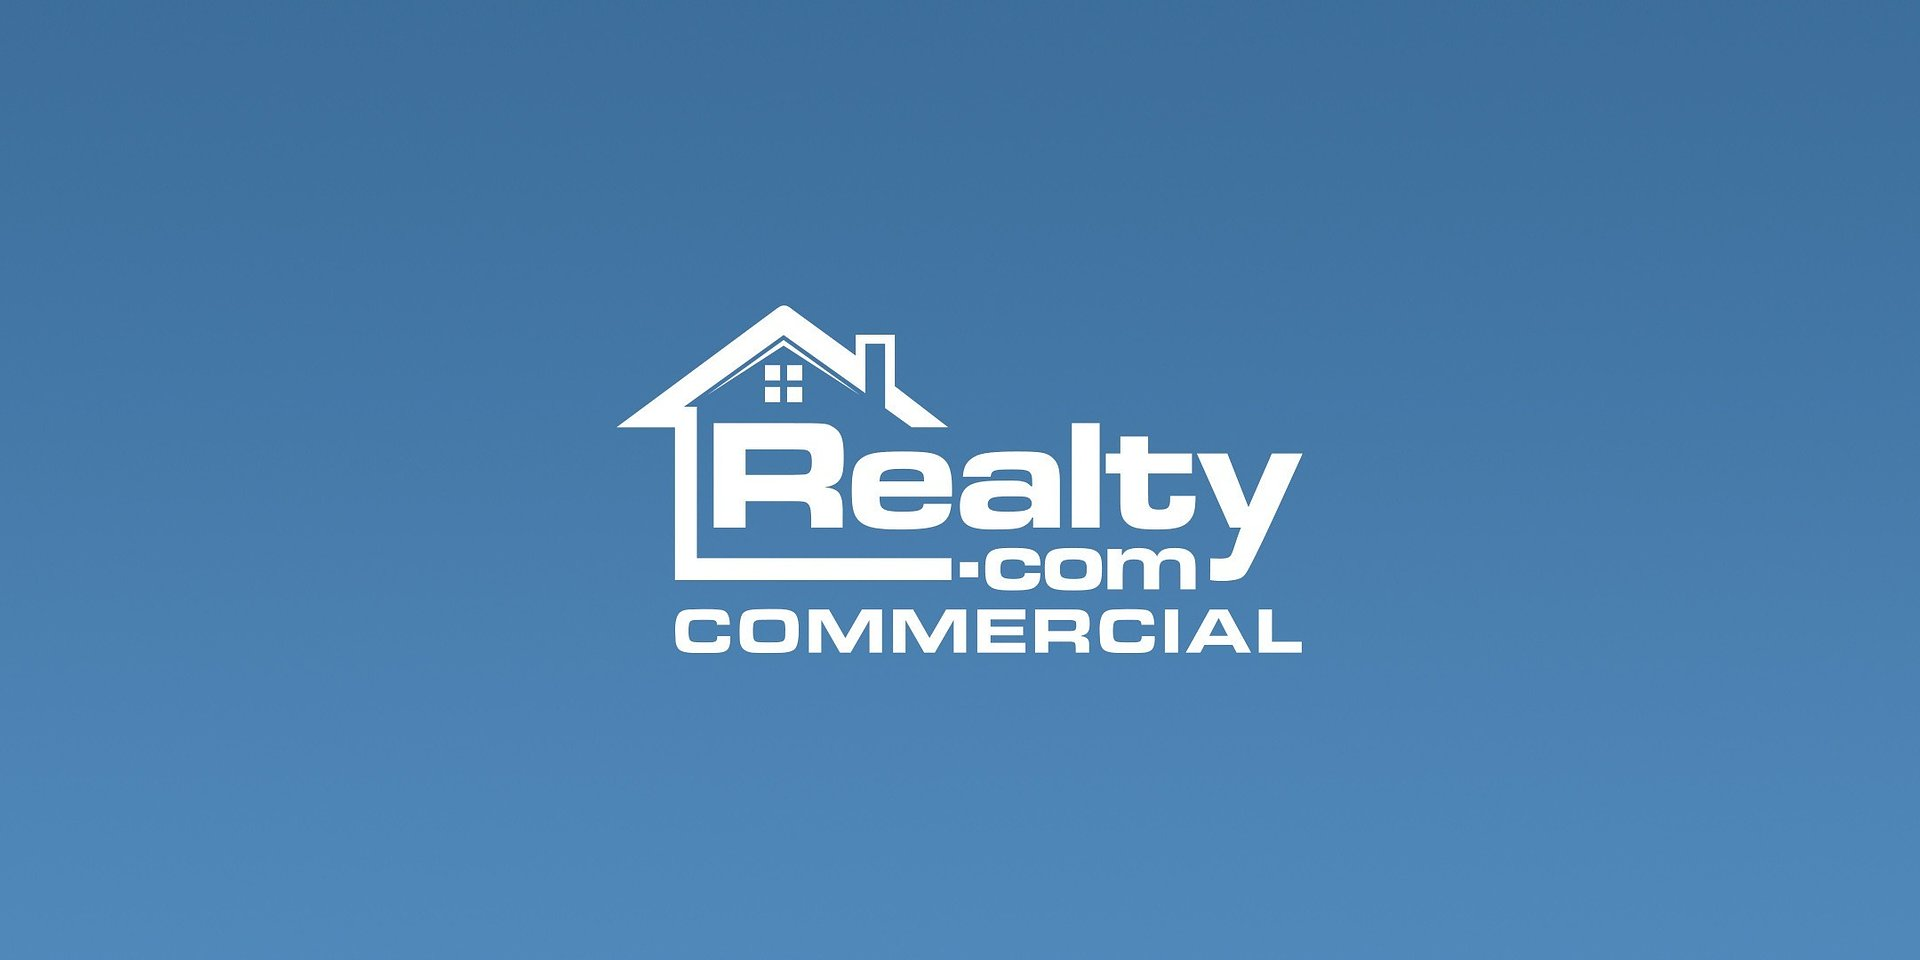 Realty.com Acquires Oxley Leasing, Expanding Commercial Real Estate Holdings